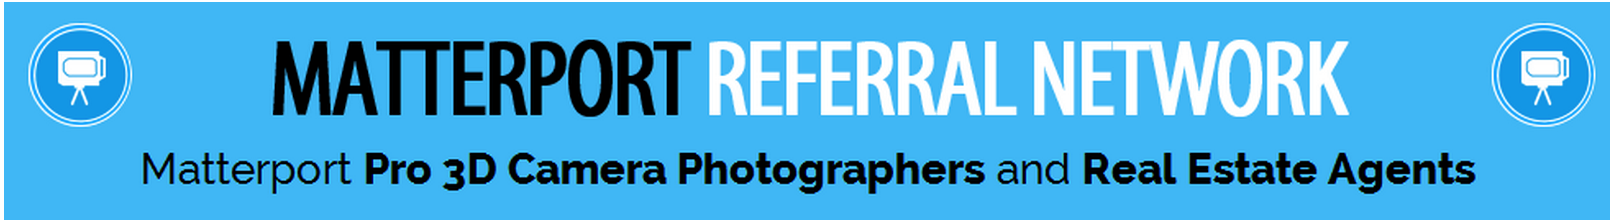 We Get Around Network of Matterport Pro 3D Camera Photographers and Real Estate Agents-Banner